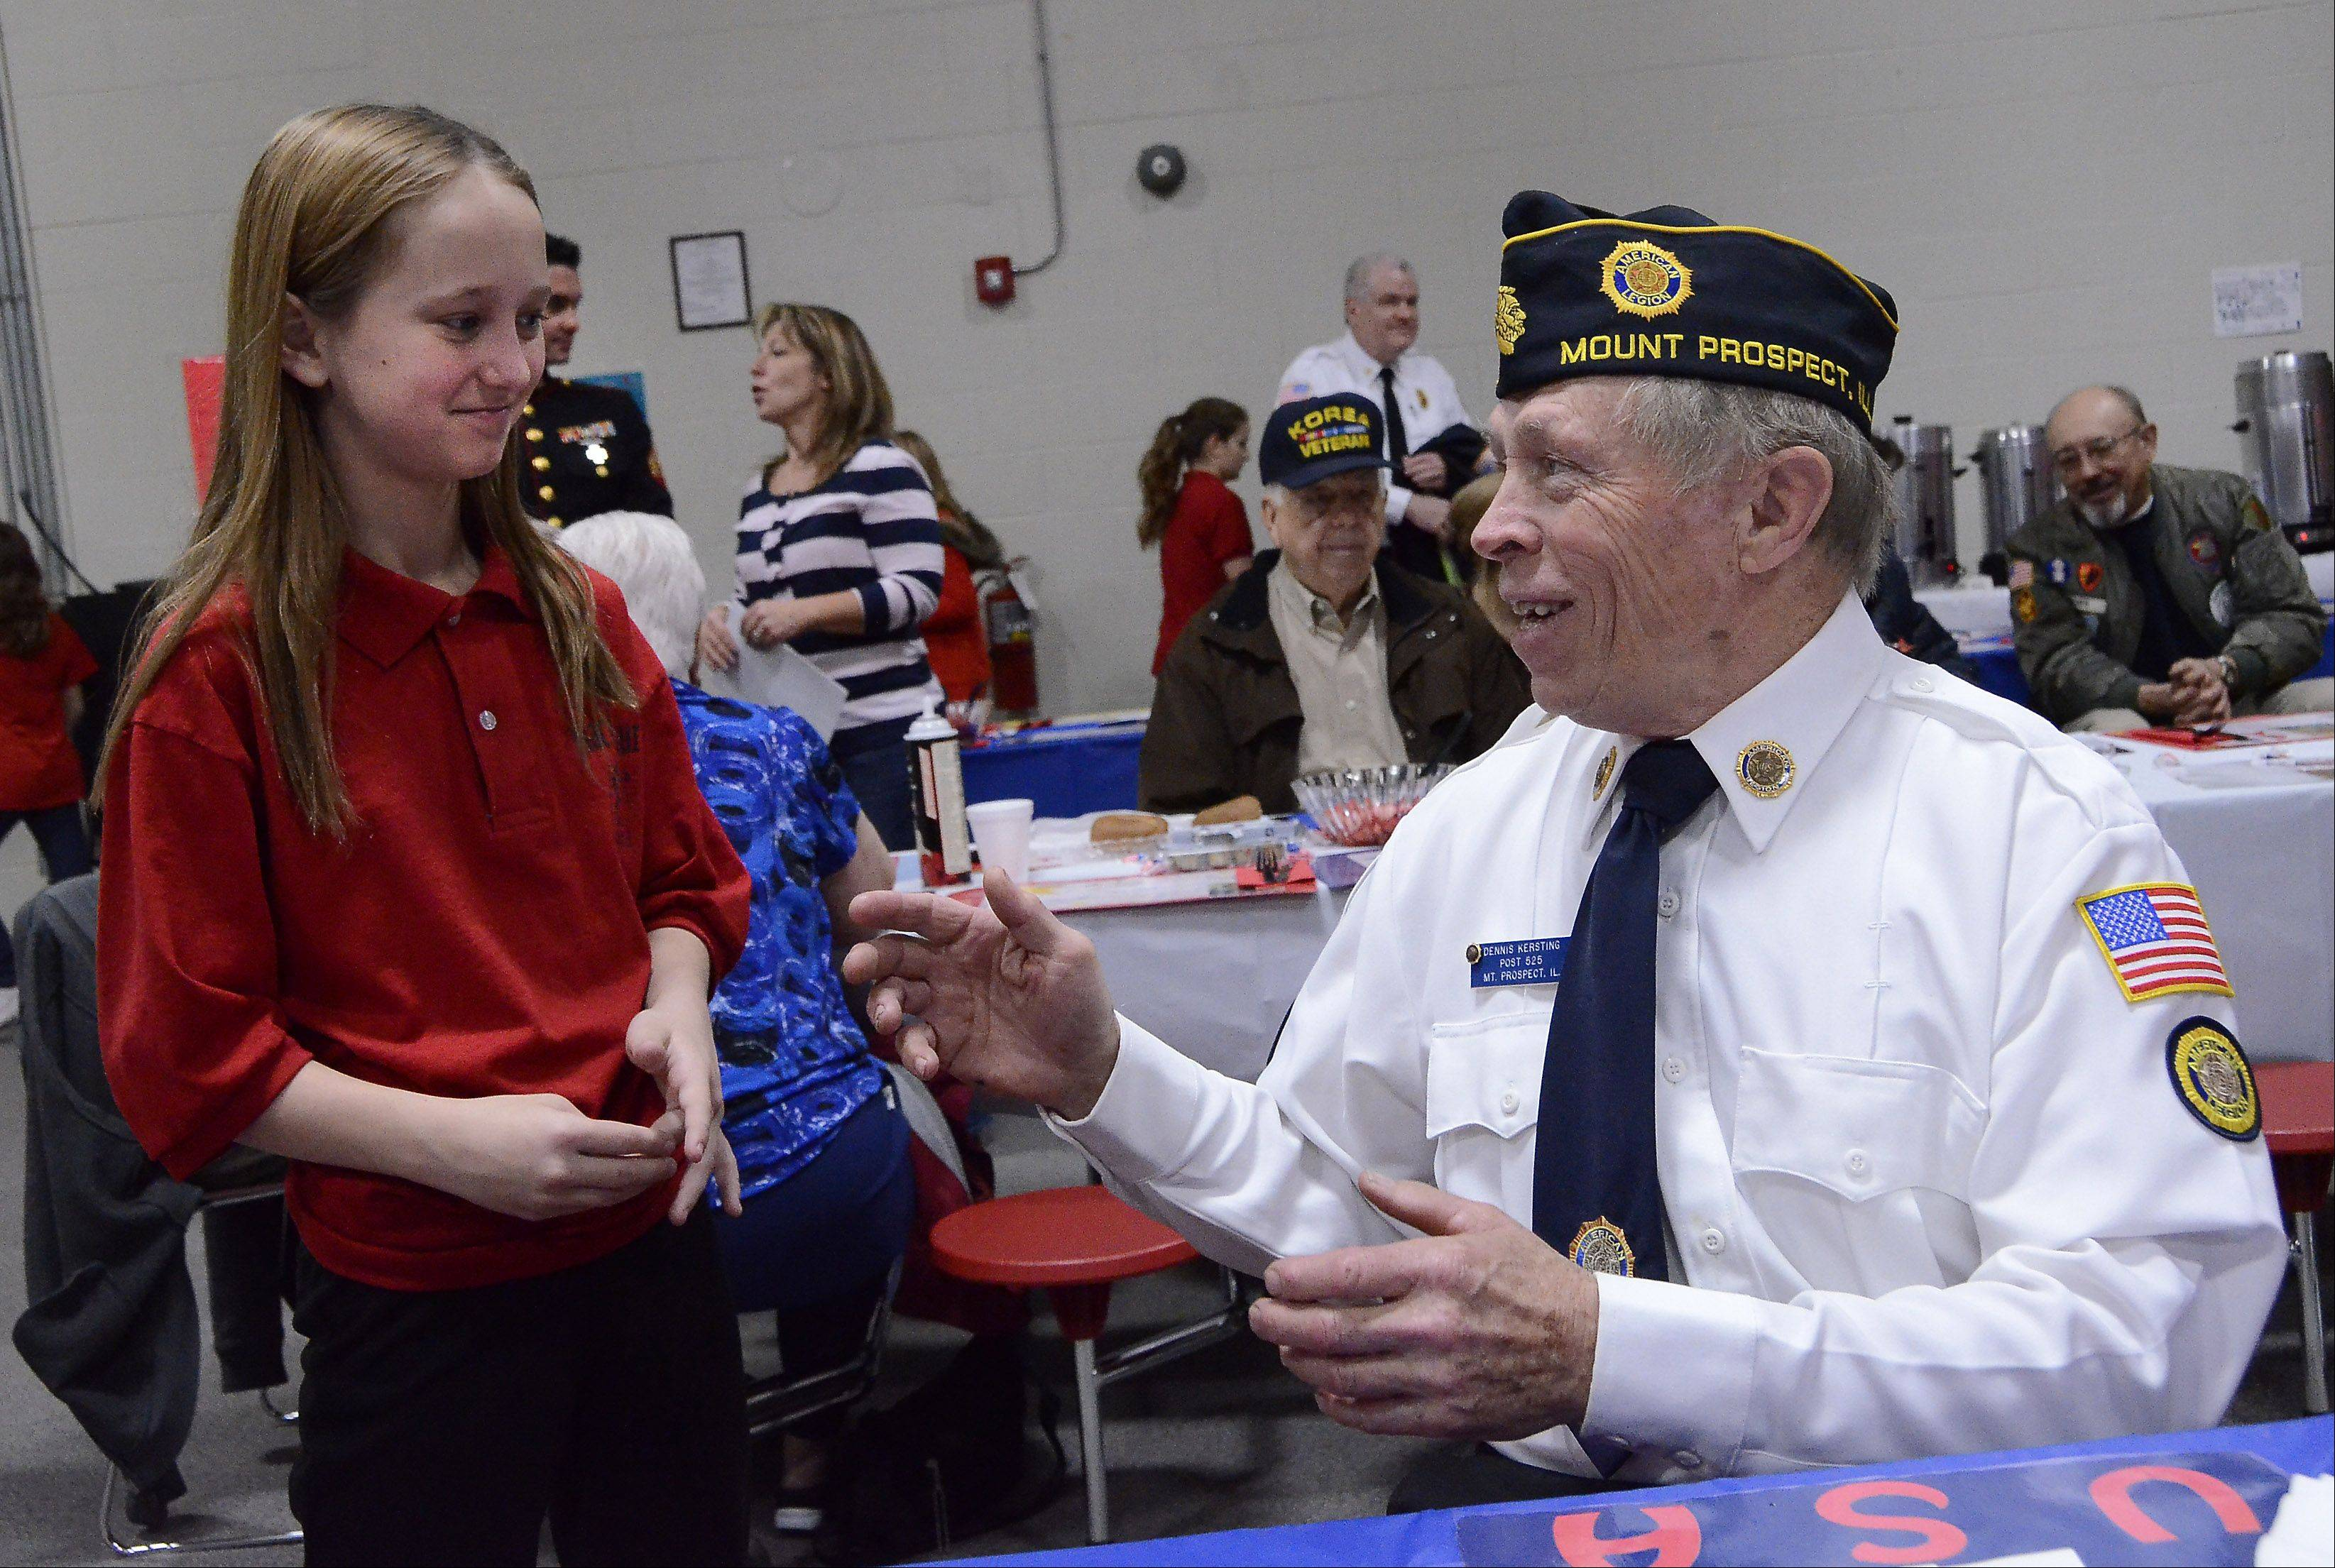 Seventh grade student Nicole Guest of Arlington Heights talks with Dennis Kersting of Des Plaines a veteran who served on the U.S.S. Rigel during the Vietnam War.